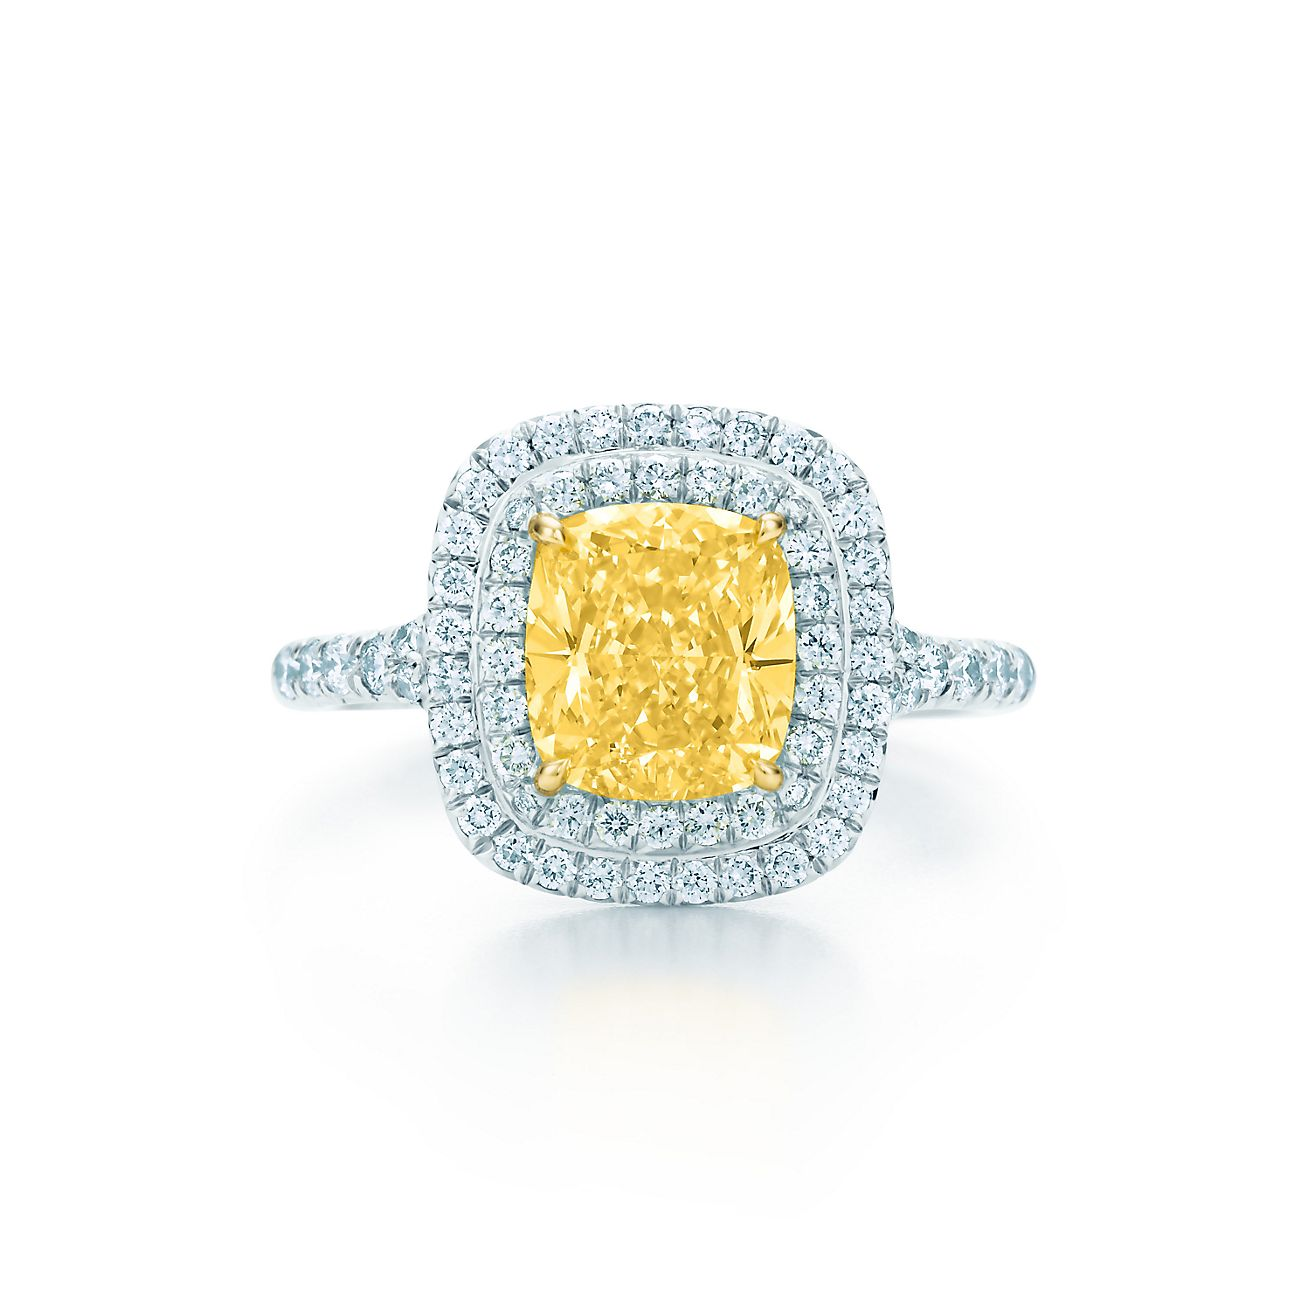 tiffany soleste174 yellow and white diamond ring in platinum